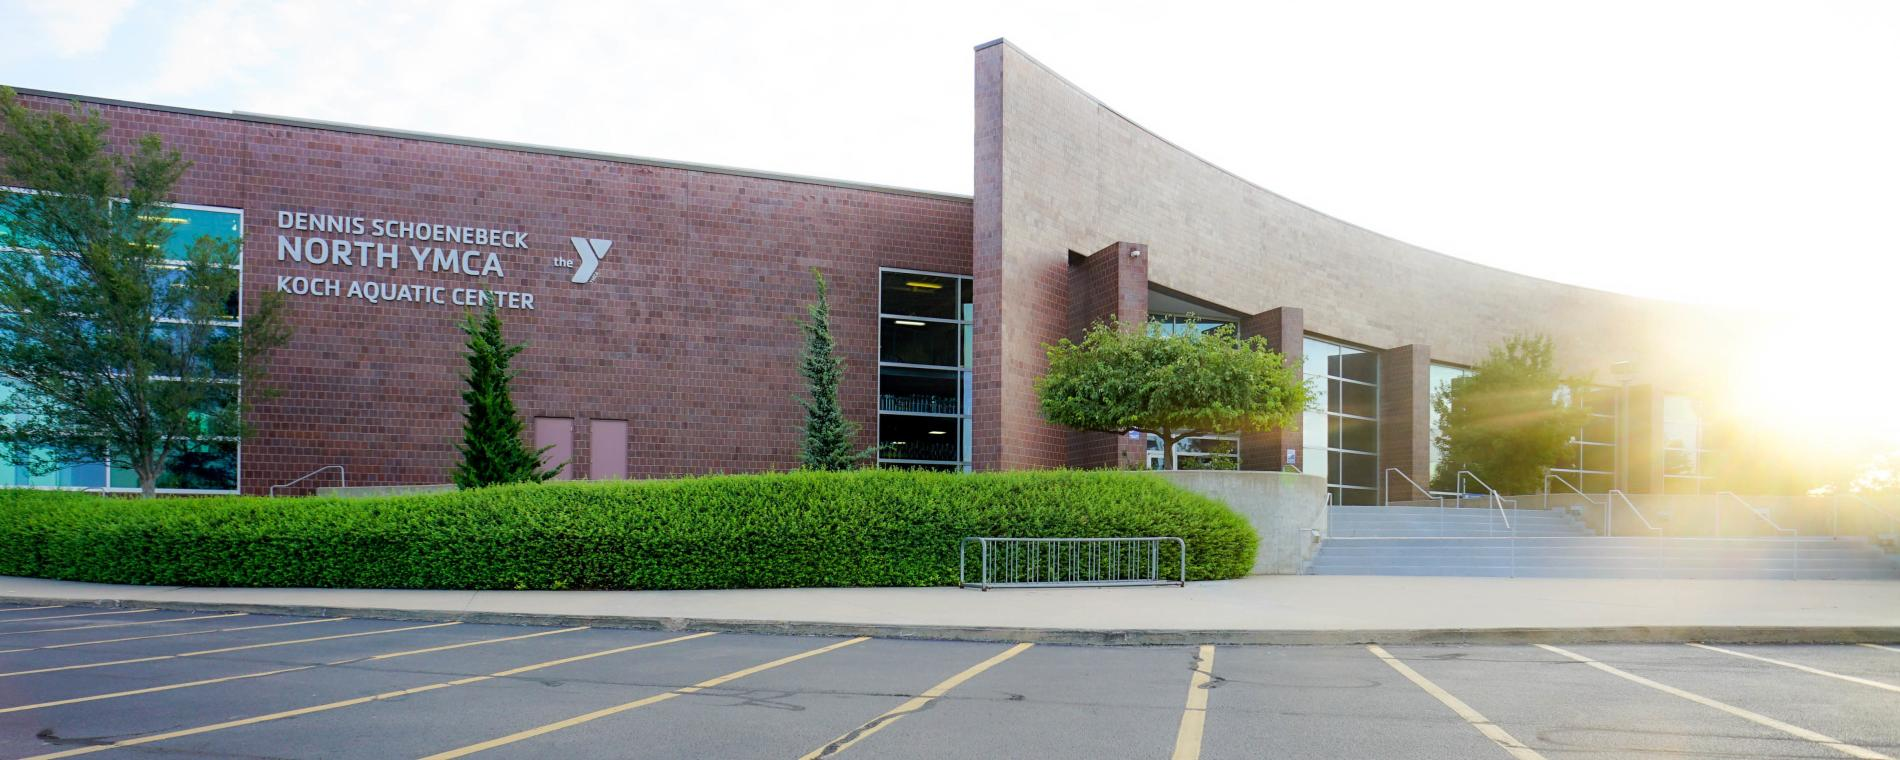 Exterior North YMCA